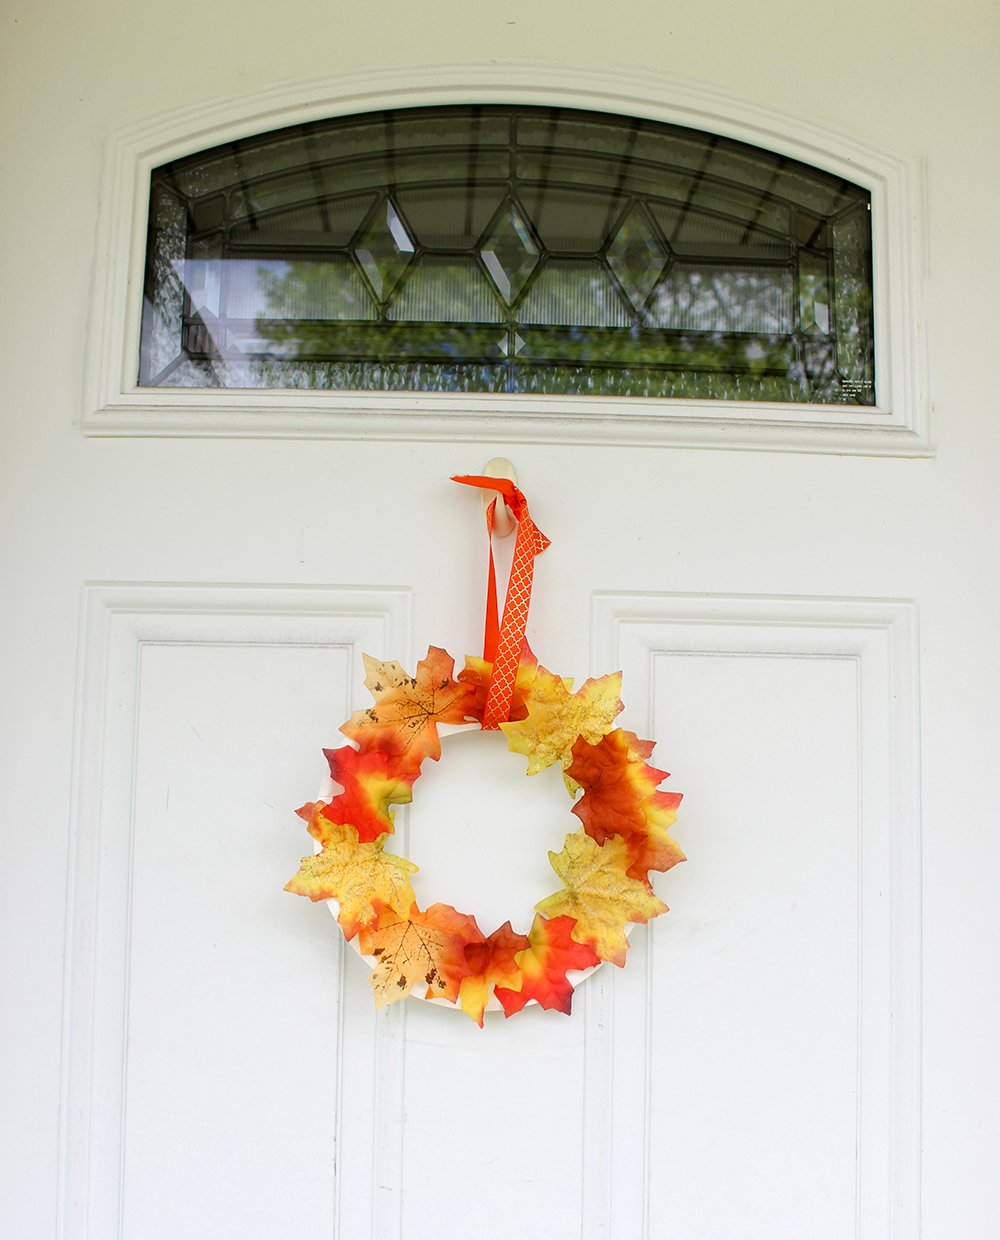 DIY Fall Wreath to easily spruce up your home and add Autumn colors to your decor. It's quick and fun to make with the kids from Dollar Store supplies!